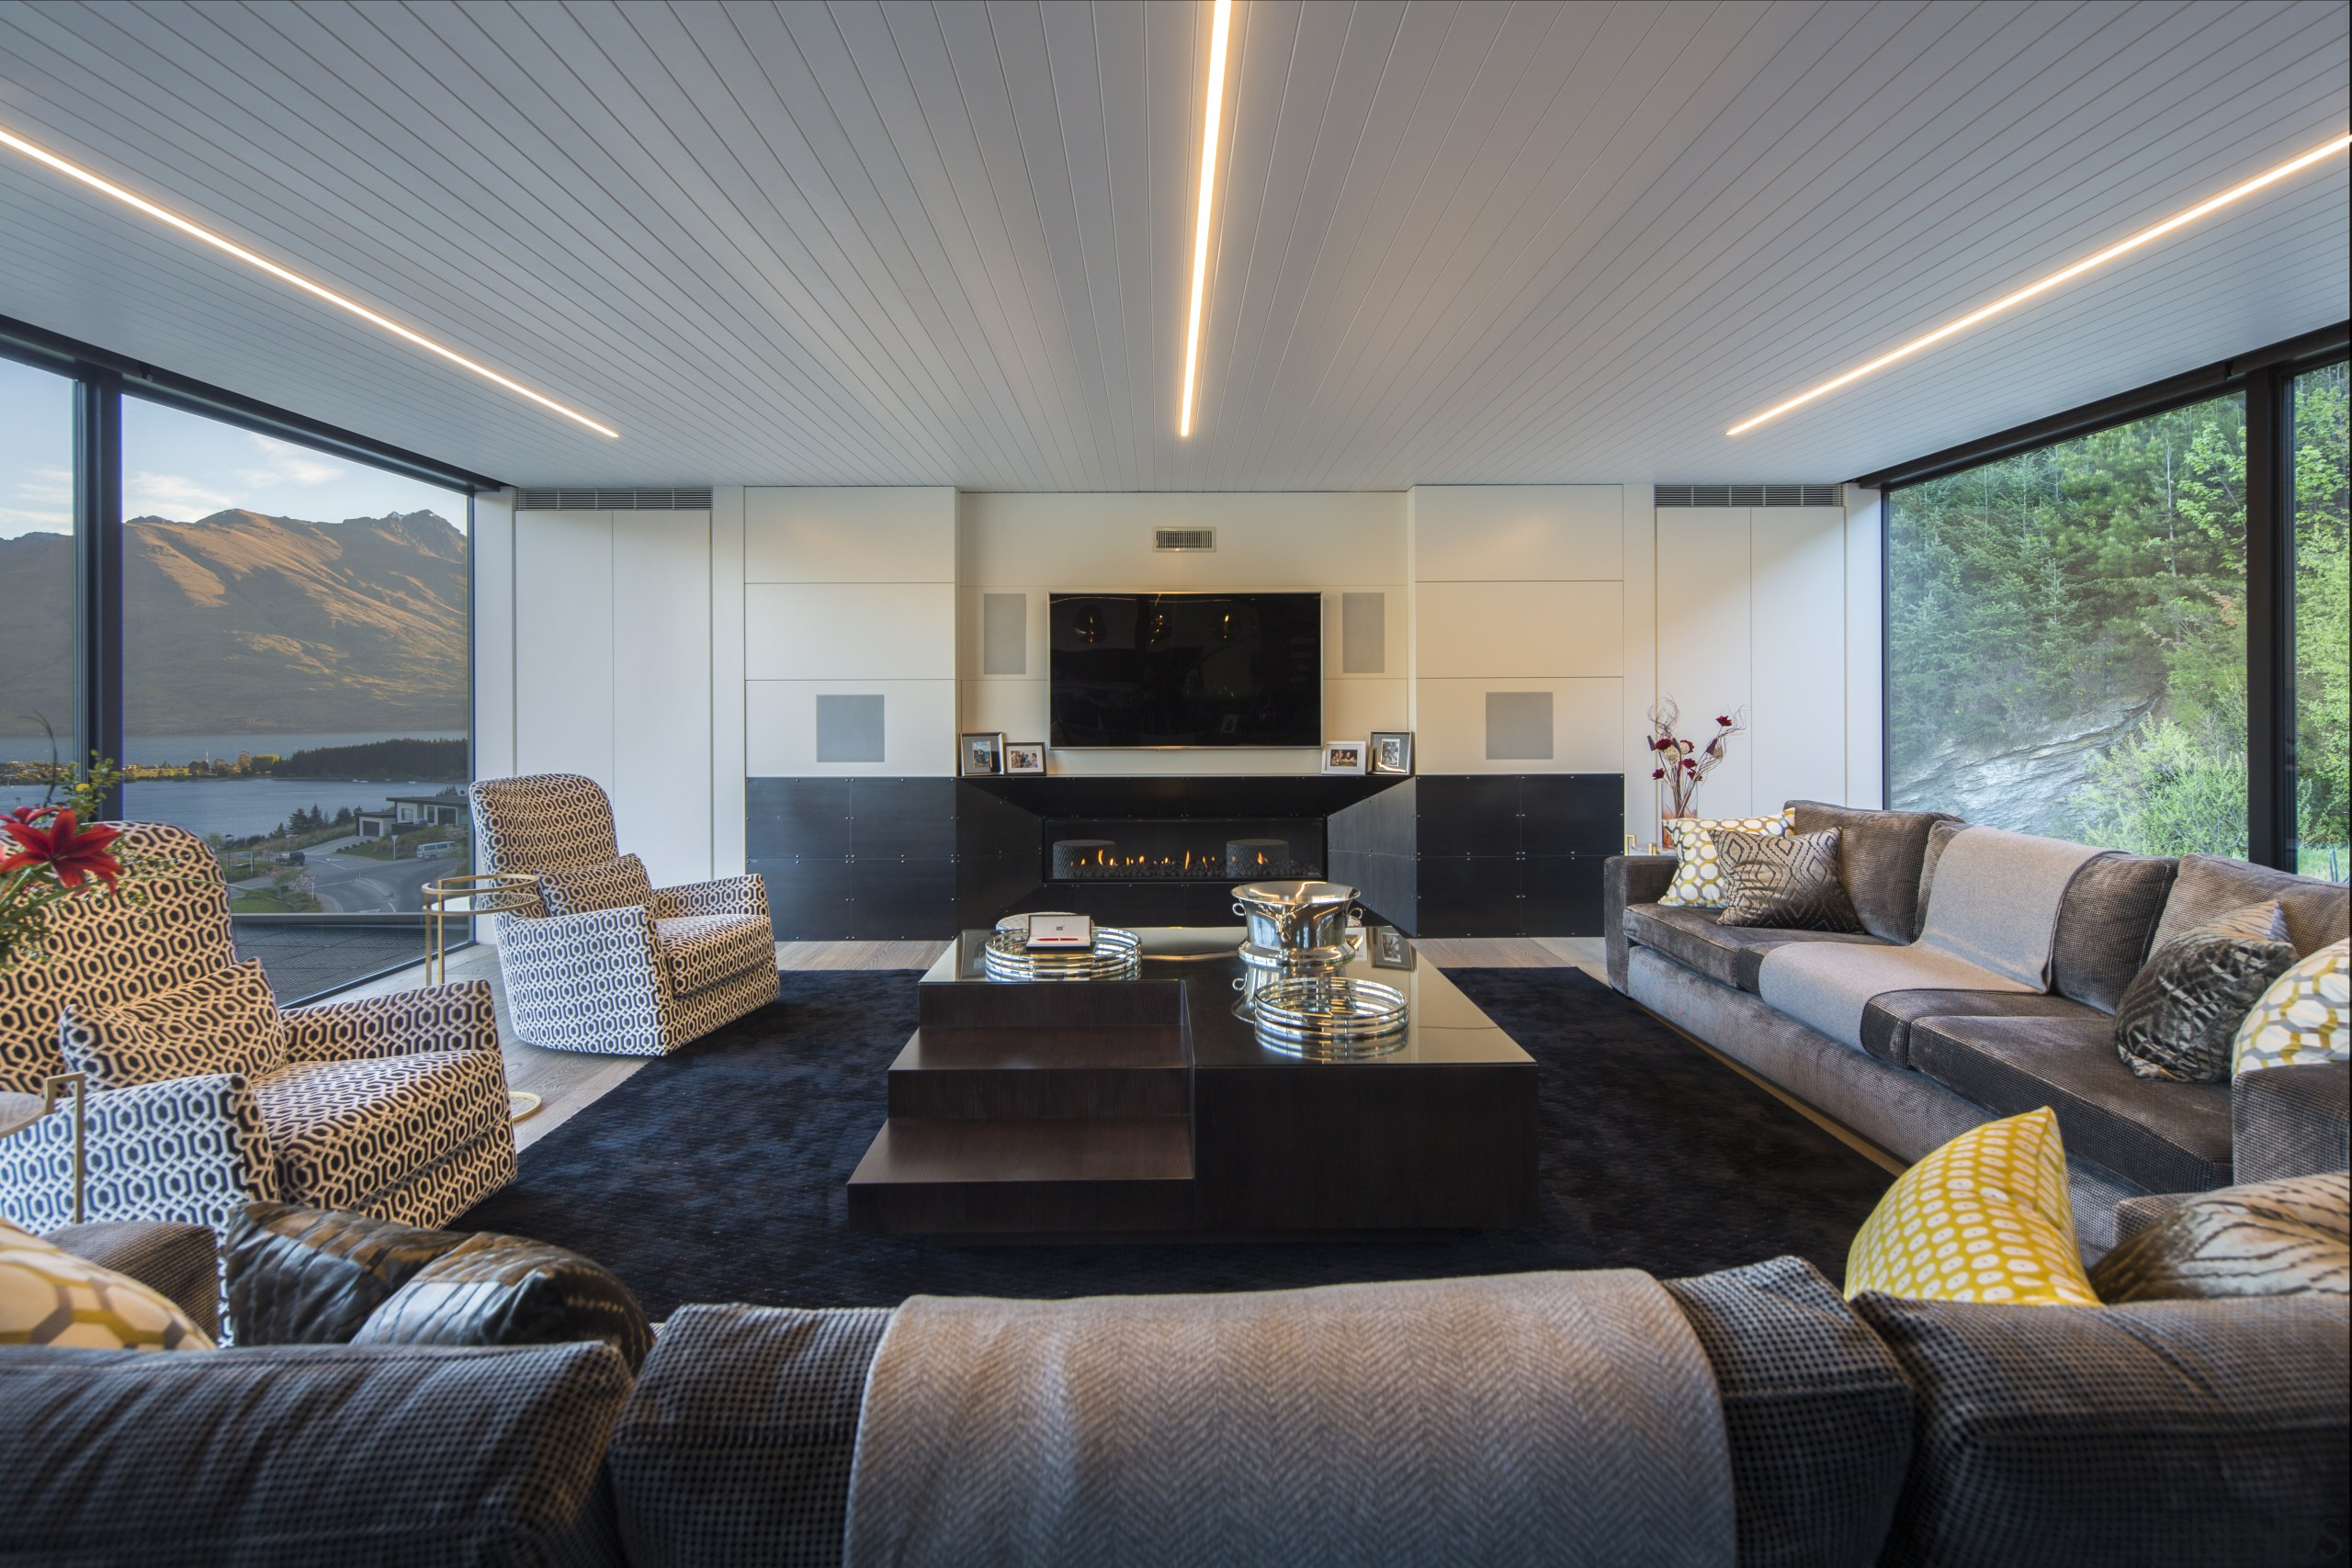 Ceiling strip lights are used in several areas architecture, ceiling, home, house, interior design, living room, Gary Todd Architecture, pendant lights